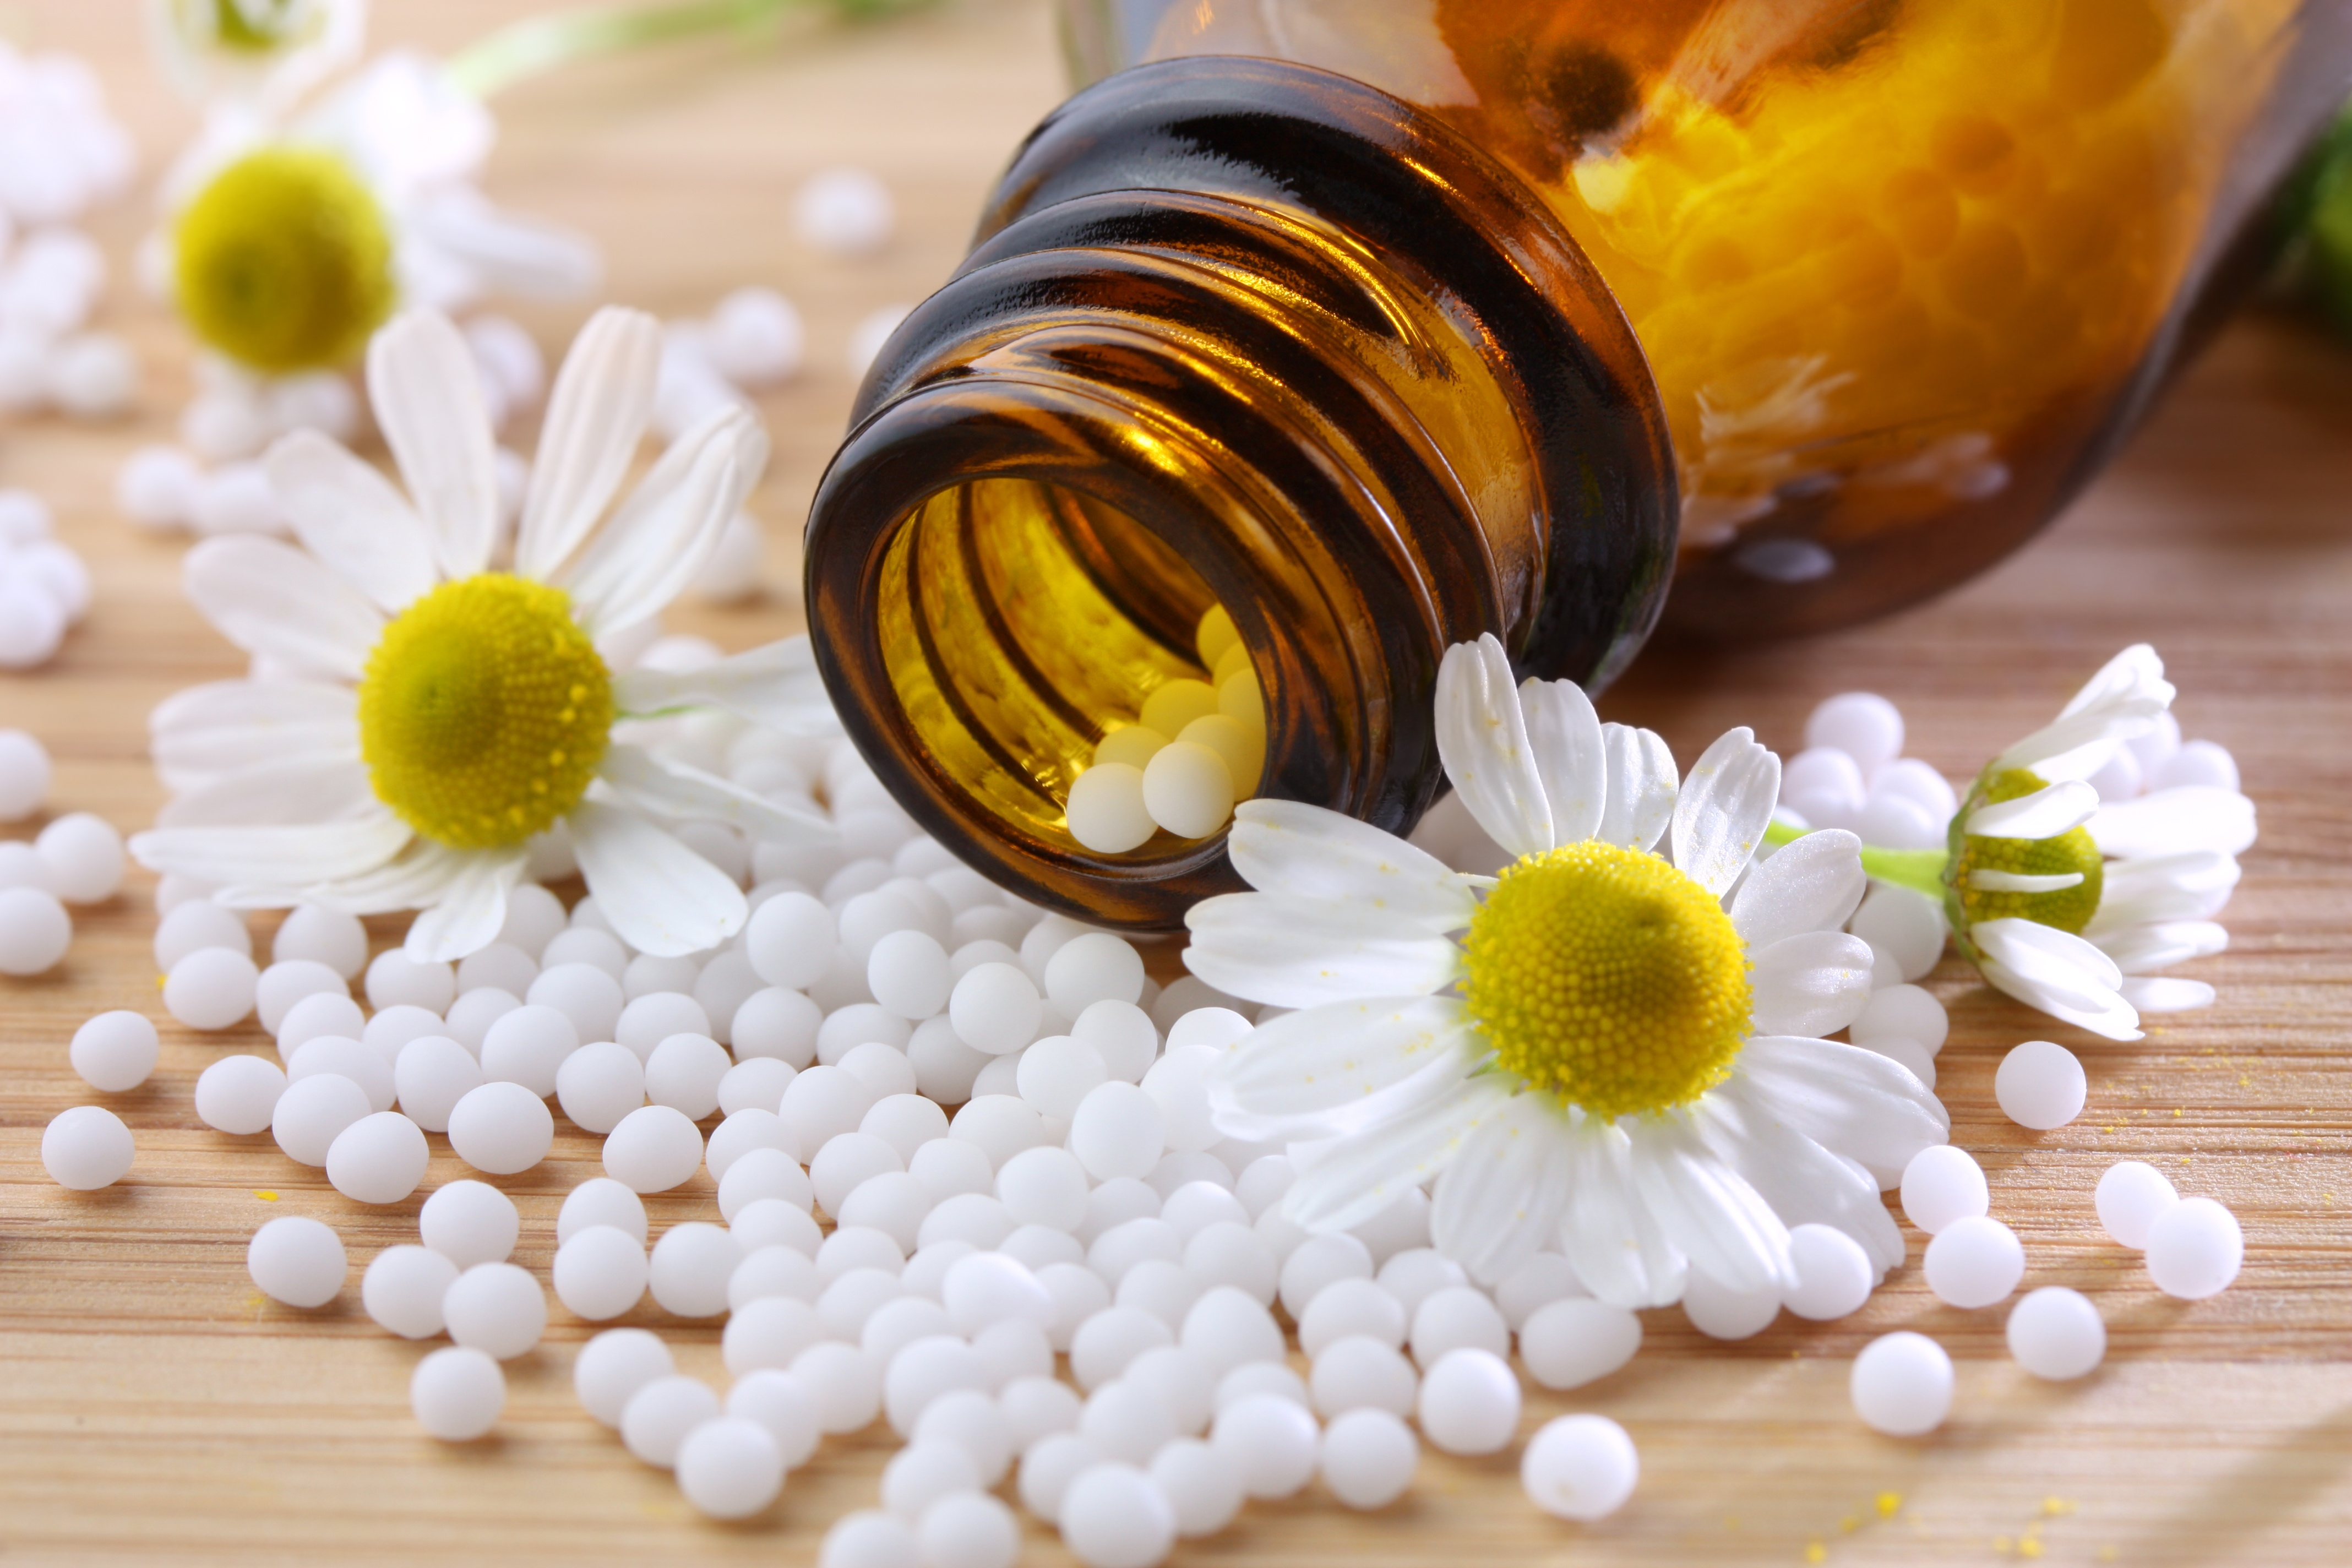 Abordare homeopatica in patologia bolilor reumatismale | Ecomed Clinic